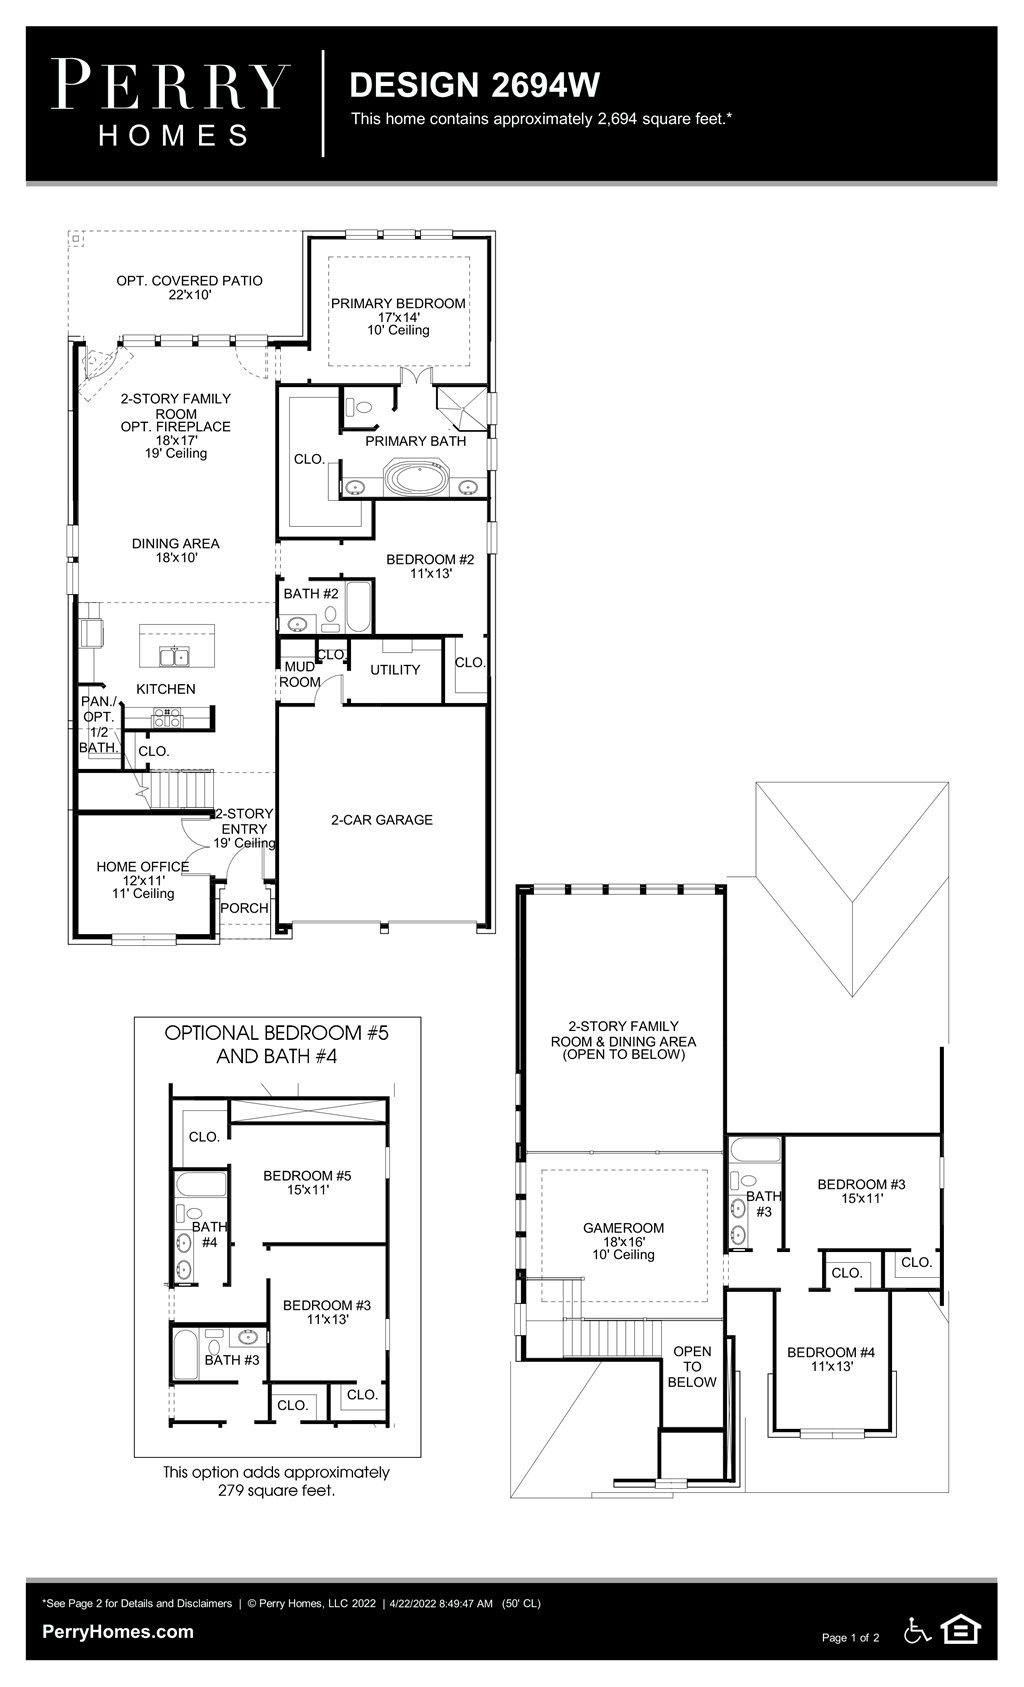 Floor Plan for 2694W